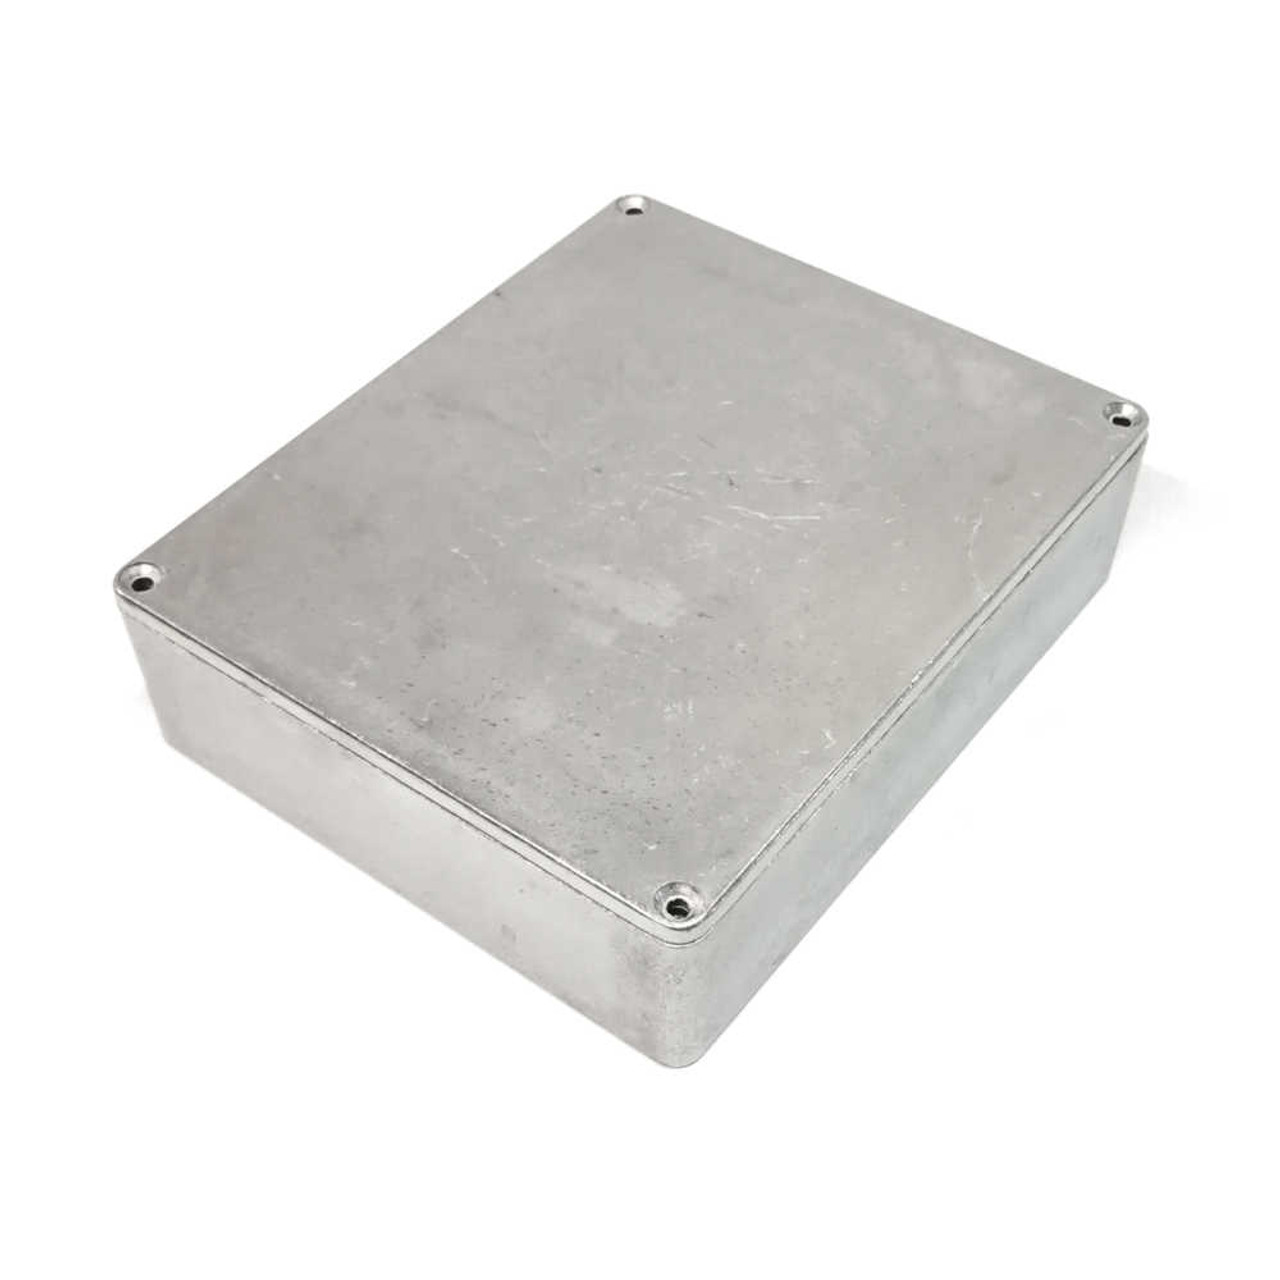 Generic 1590XX - Mid-Large Pedal Enclosure